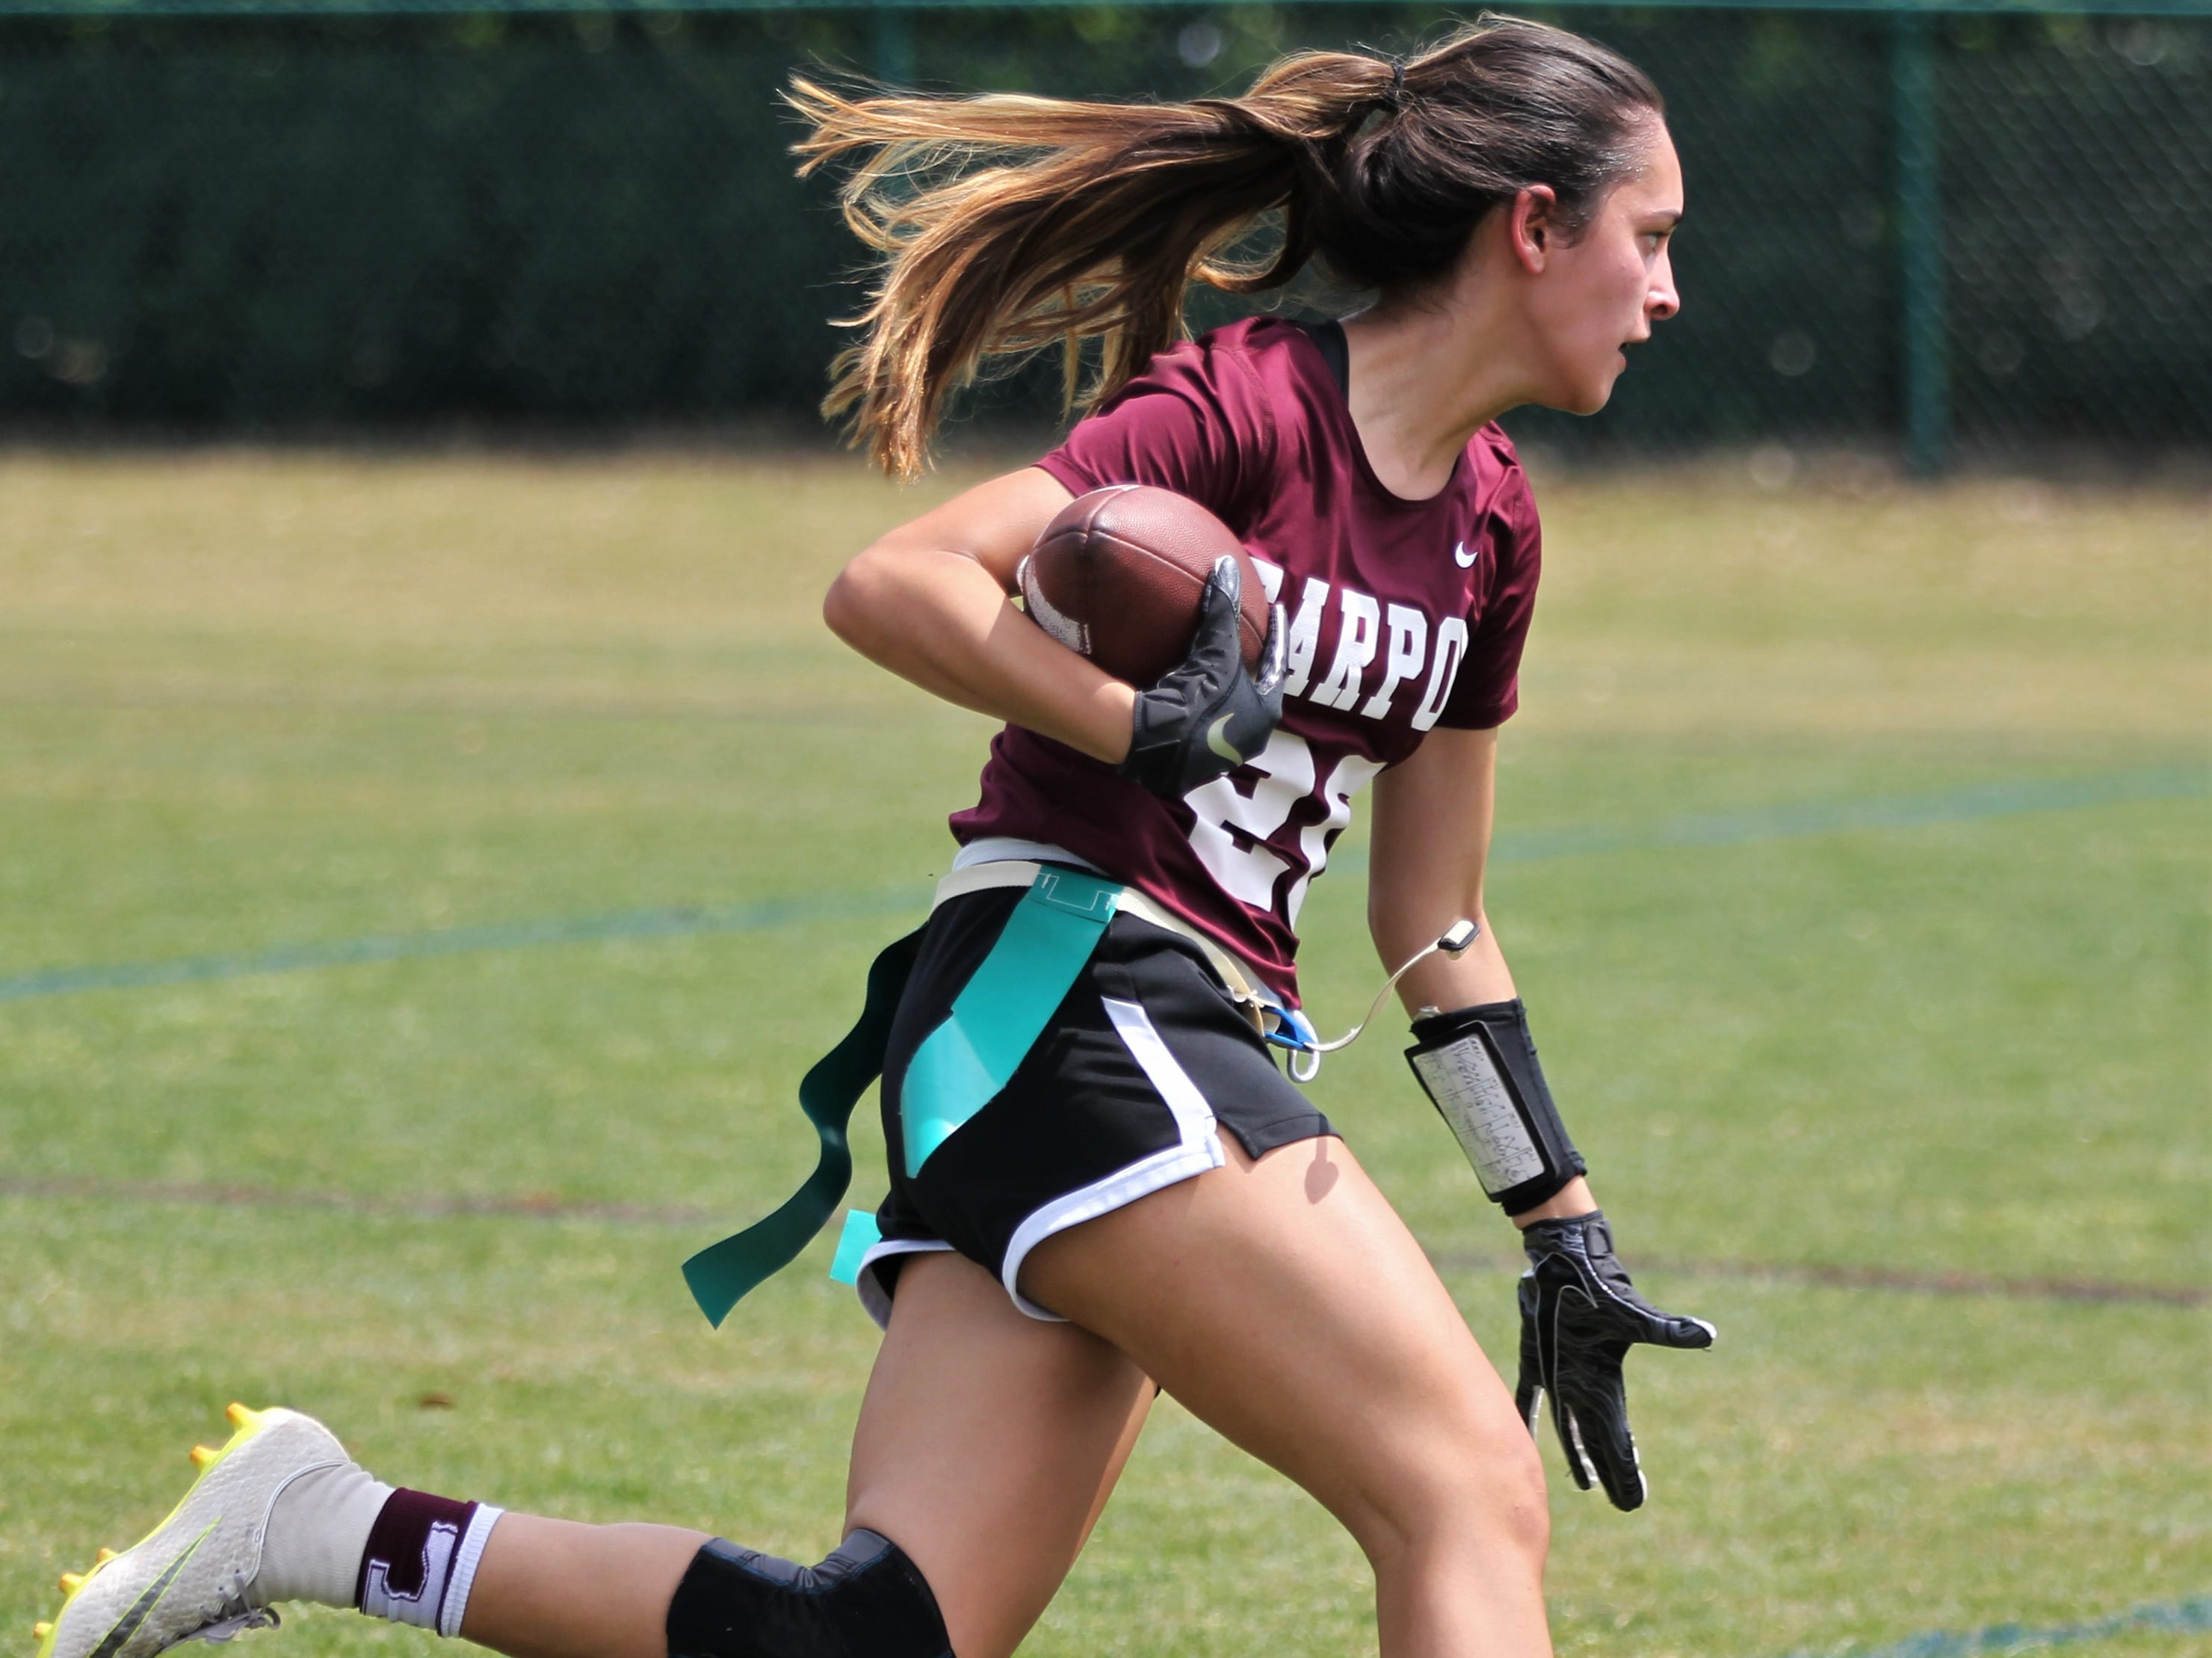 Tarpon Springs plays in the 2019 Capital City Classic flag football tournament at the FSU Rec SportsPlex on April 6, 2019.